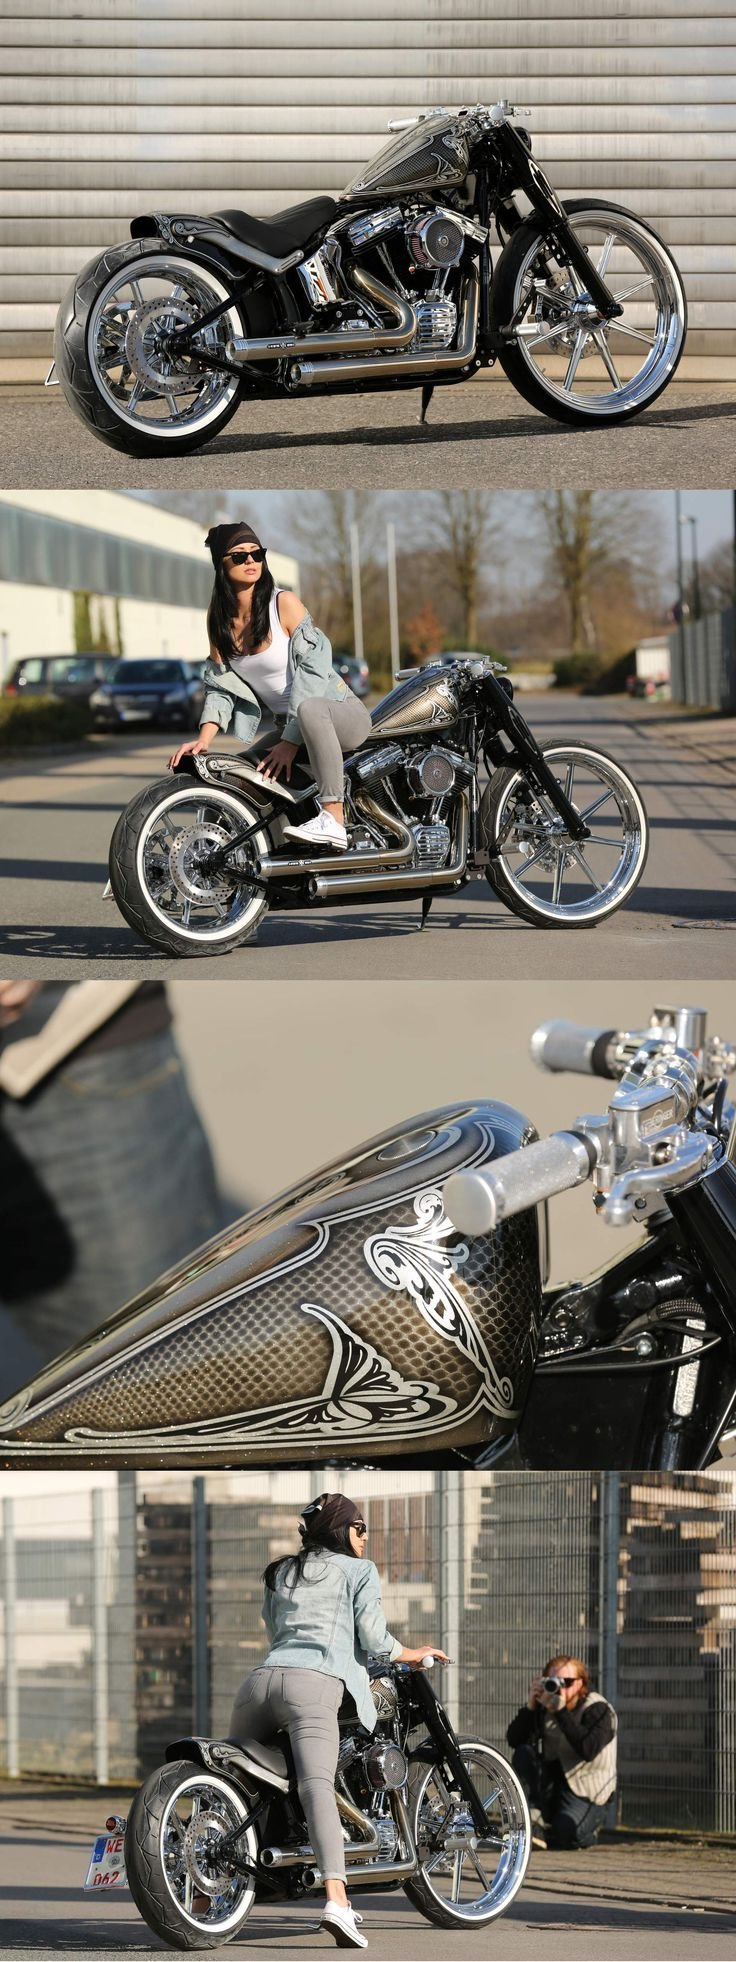 Best Harley Davidson Softail Slim Images On Pinterest Harley - Stickers for motorcycles harley davidsonsharley davidson softail slim peinture gris mat avec patine et